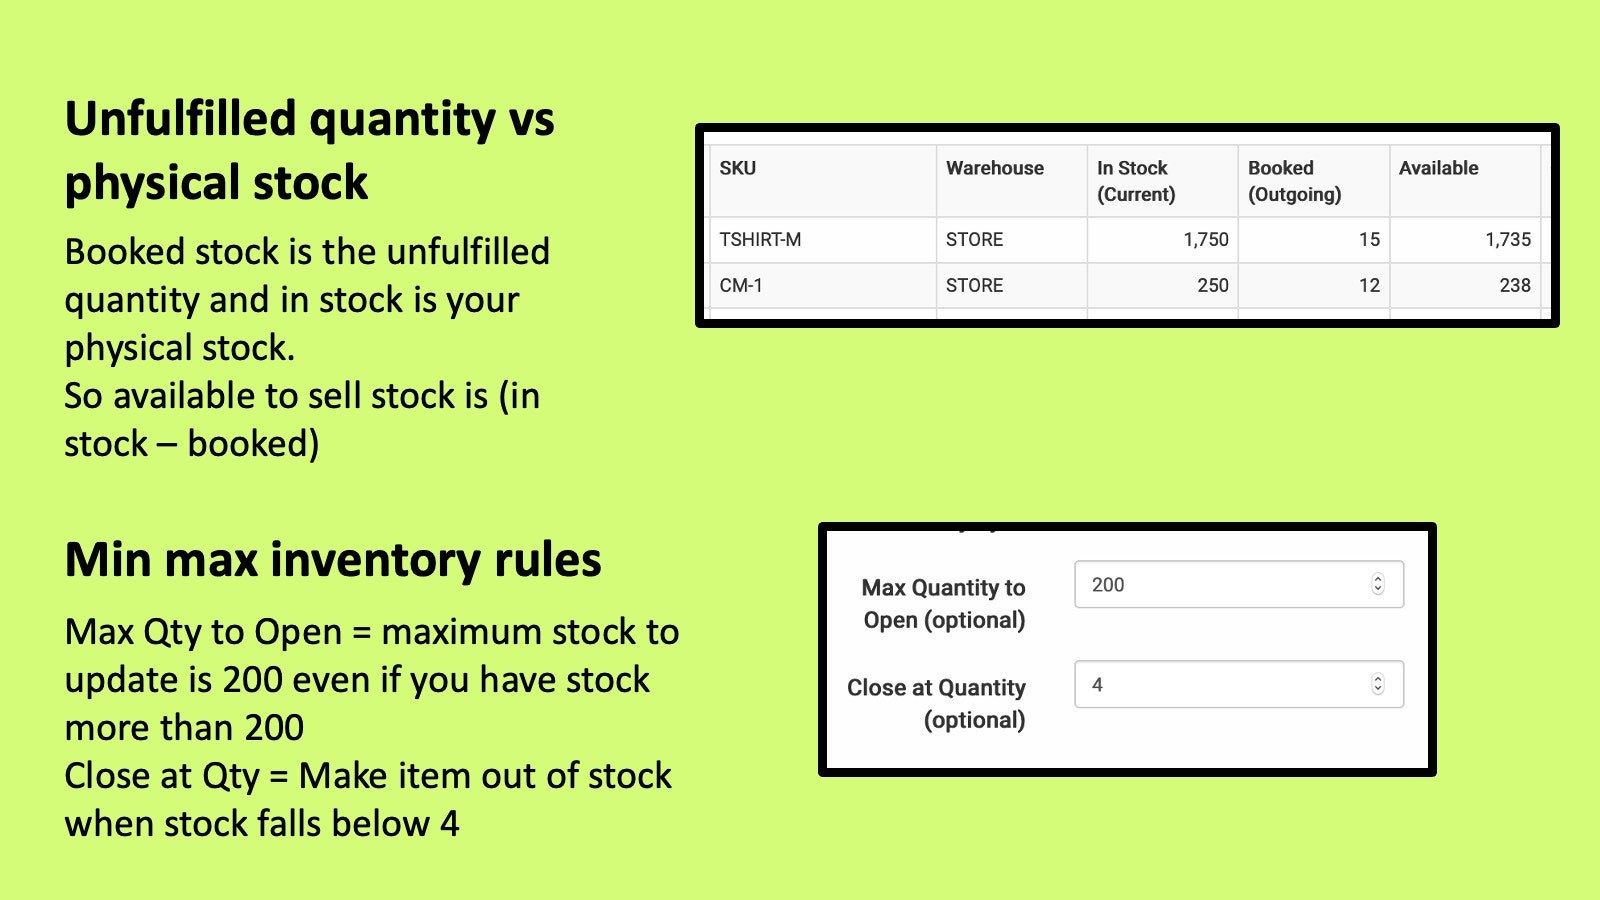 Unfulfilled quantity in orders vs current physical stock